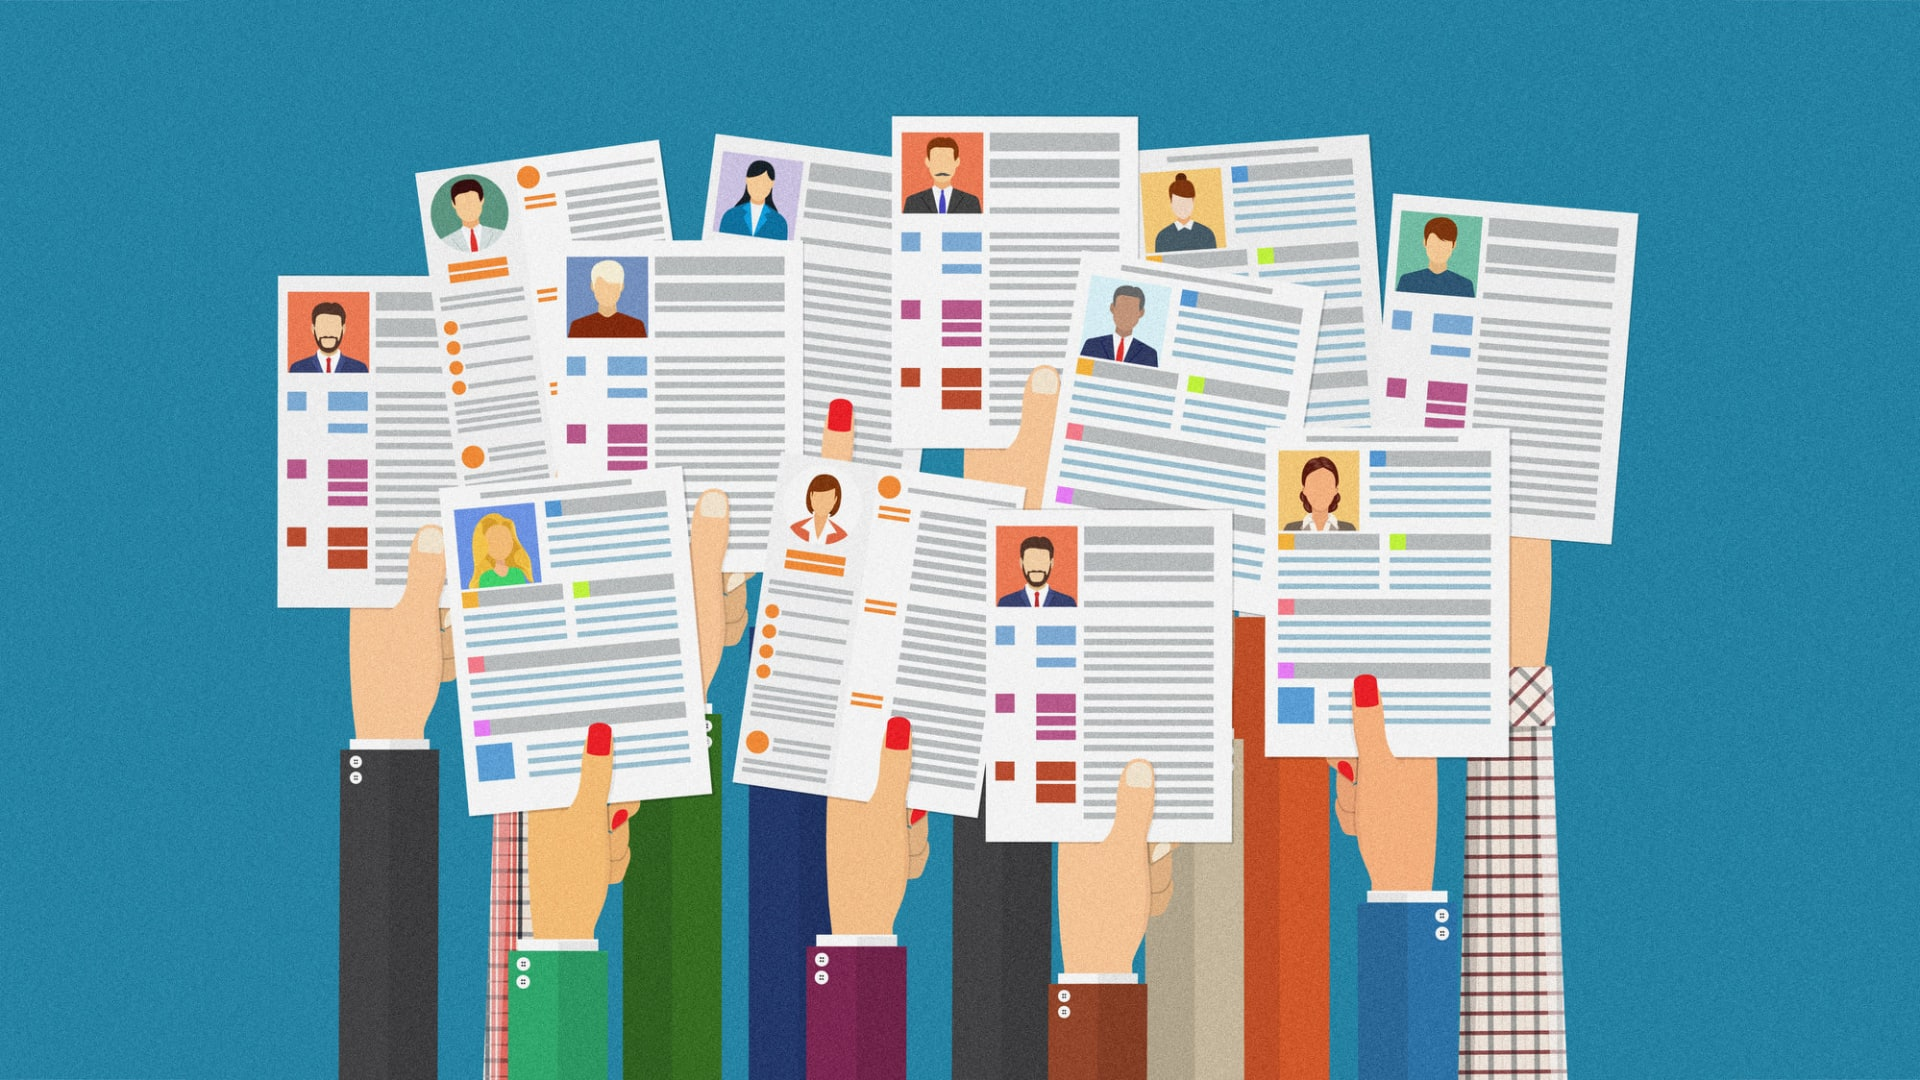 Get the Right People on Your Team With These 4 Hiring Tips